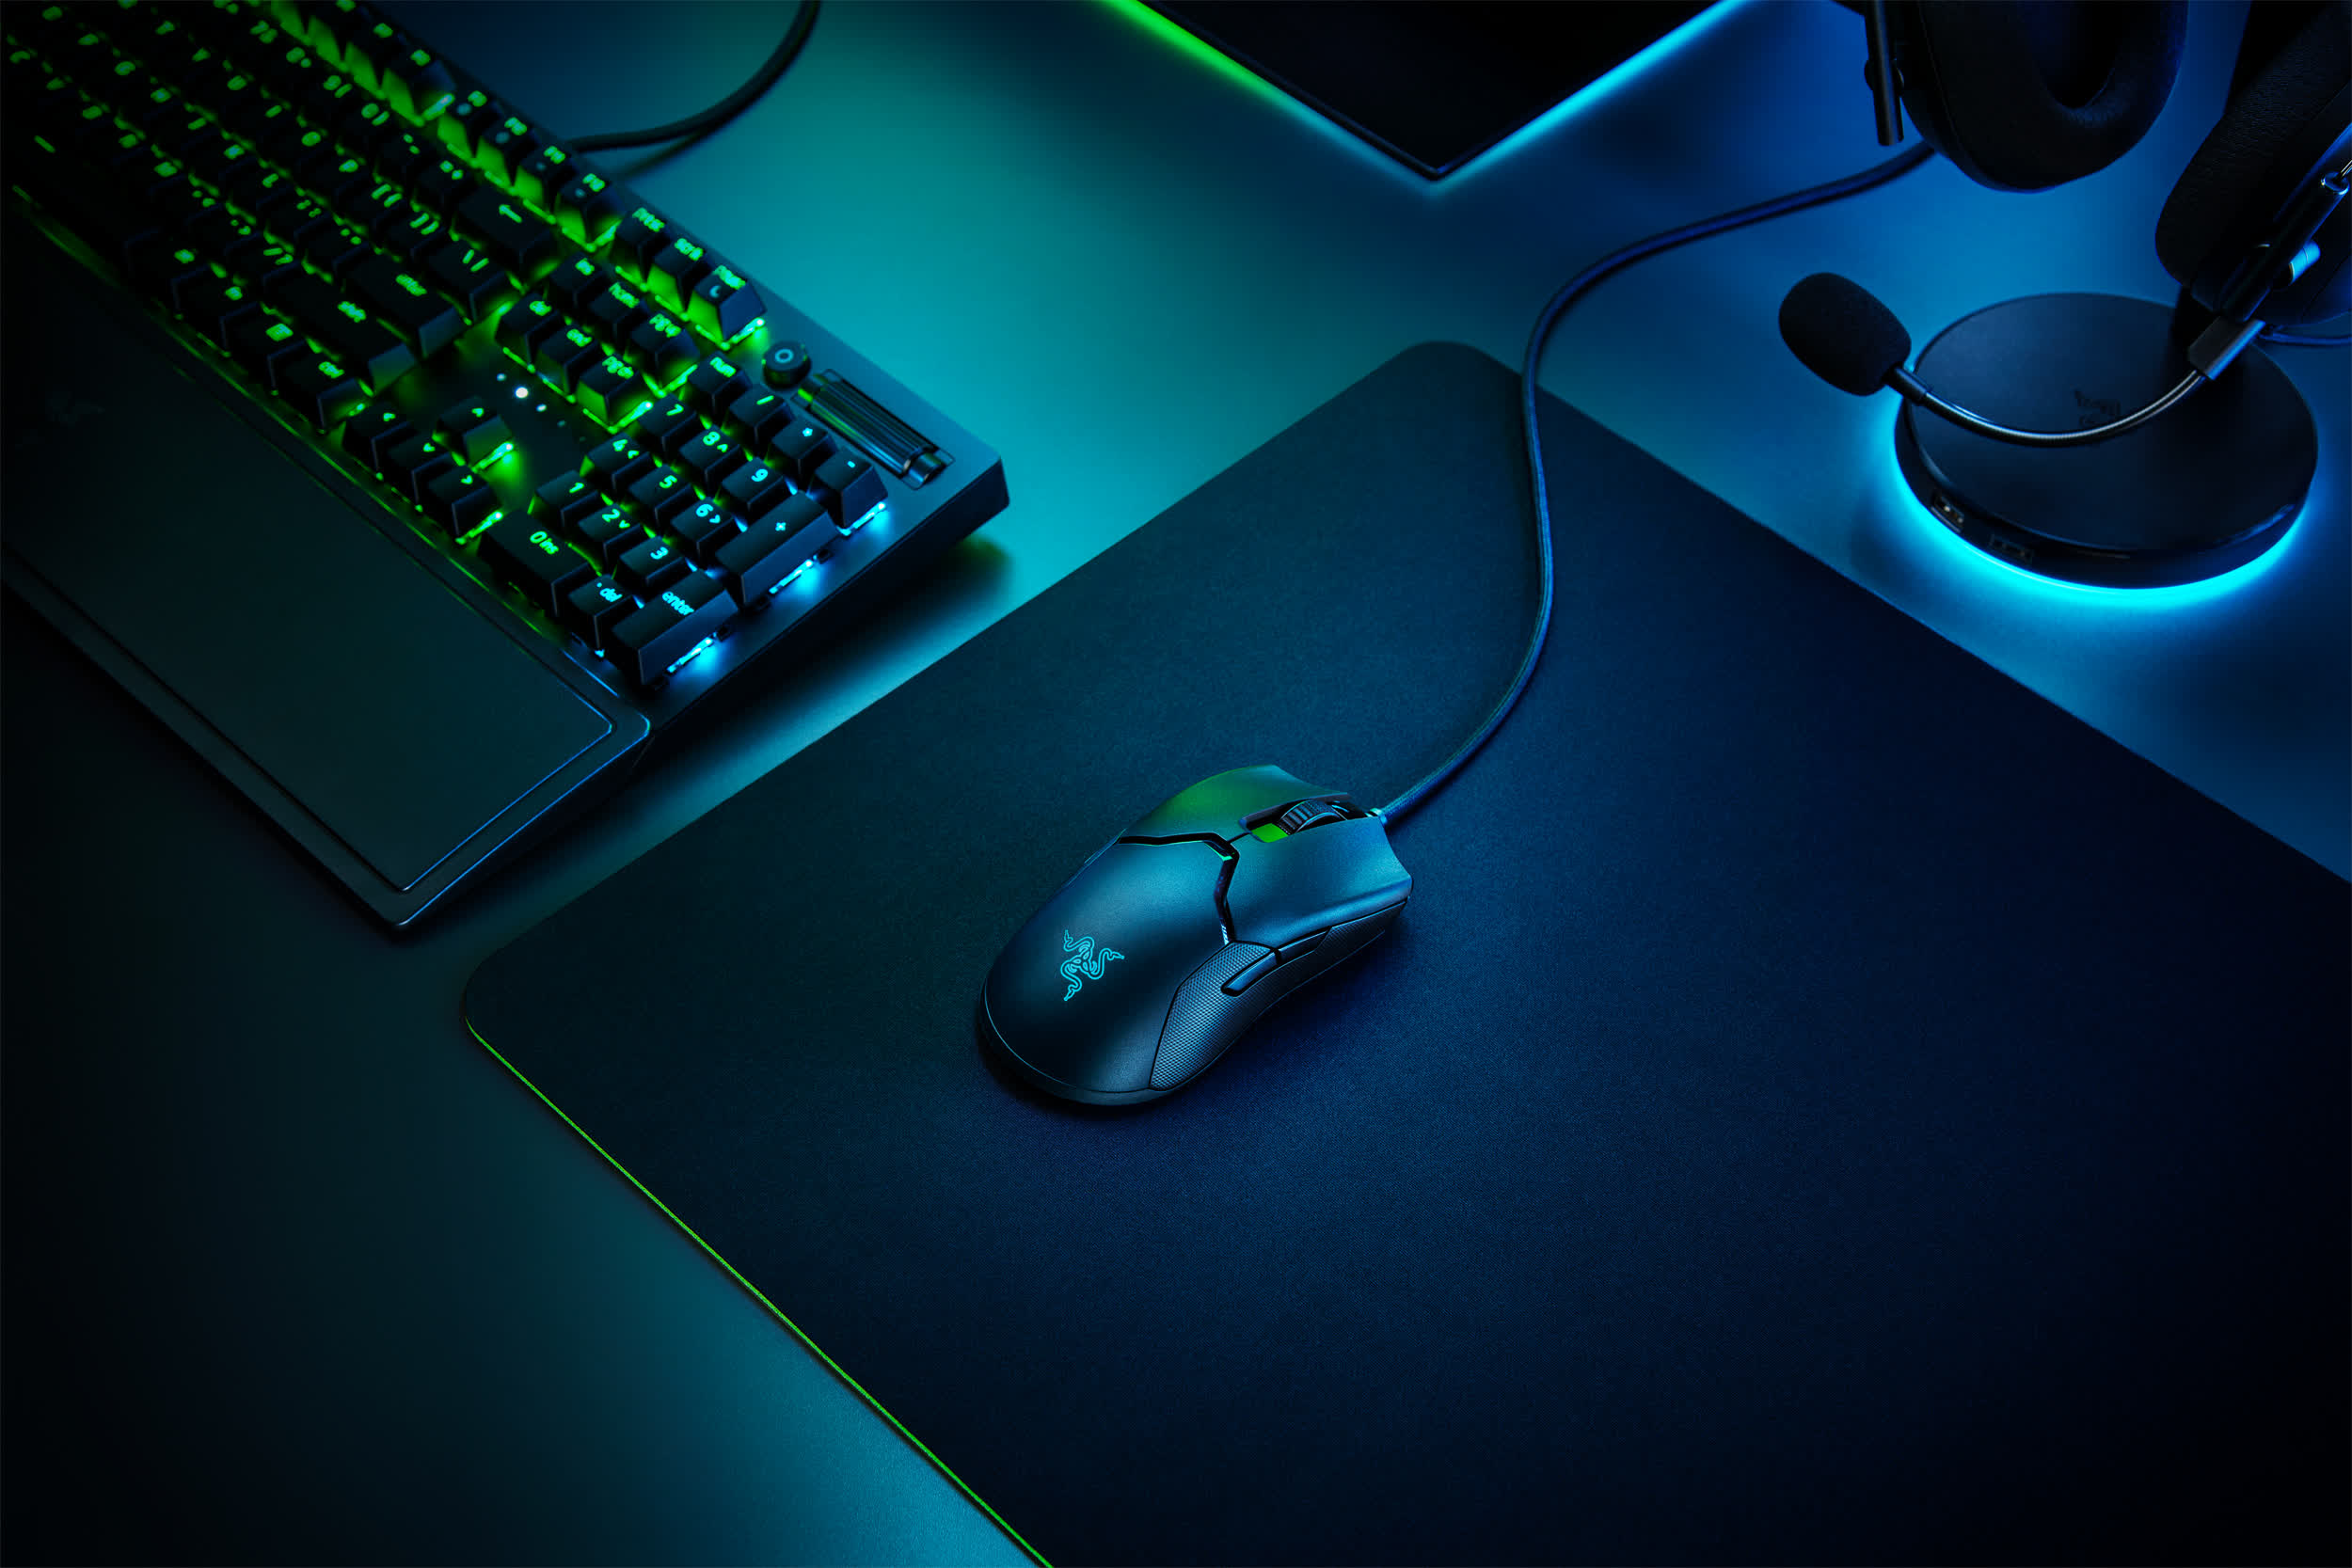 Razer Synapse bug grants Windows admin privileges by plugging in a mouse or keyboard